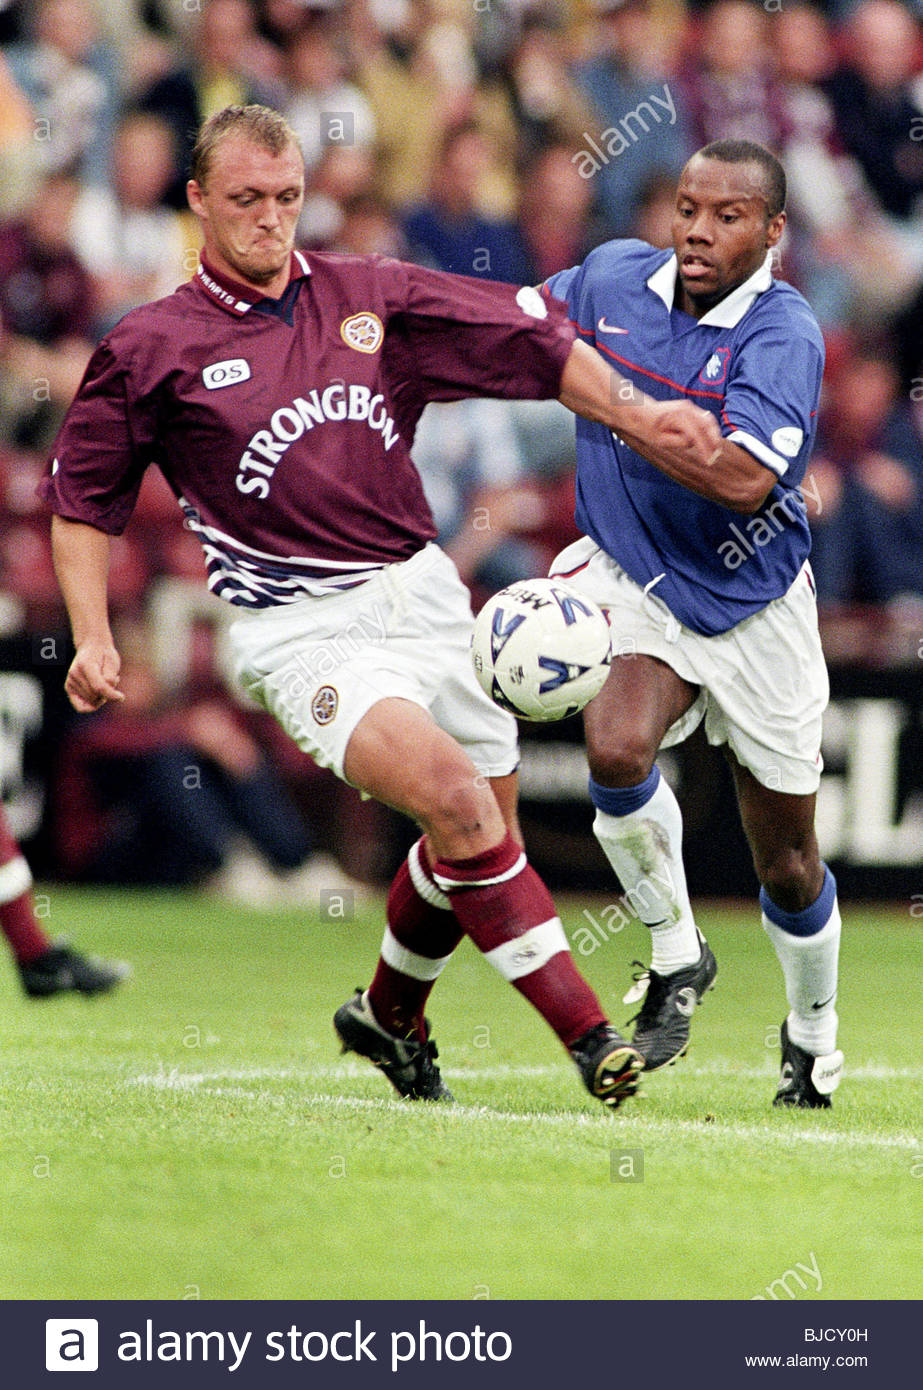 02/08/98 SPL HEARTS V RANGERS (2-1) TYNECASTLE - EDINBURGH Rangers striker Rod wallace (right) battles for possession - Stock Image